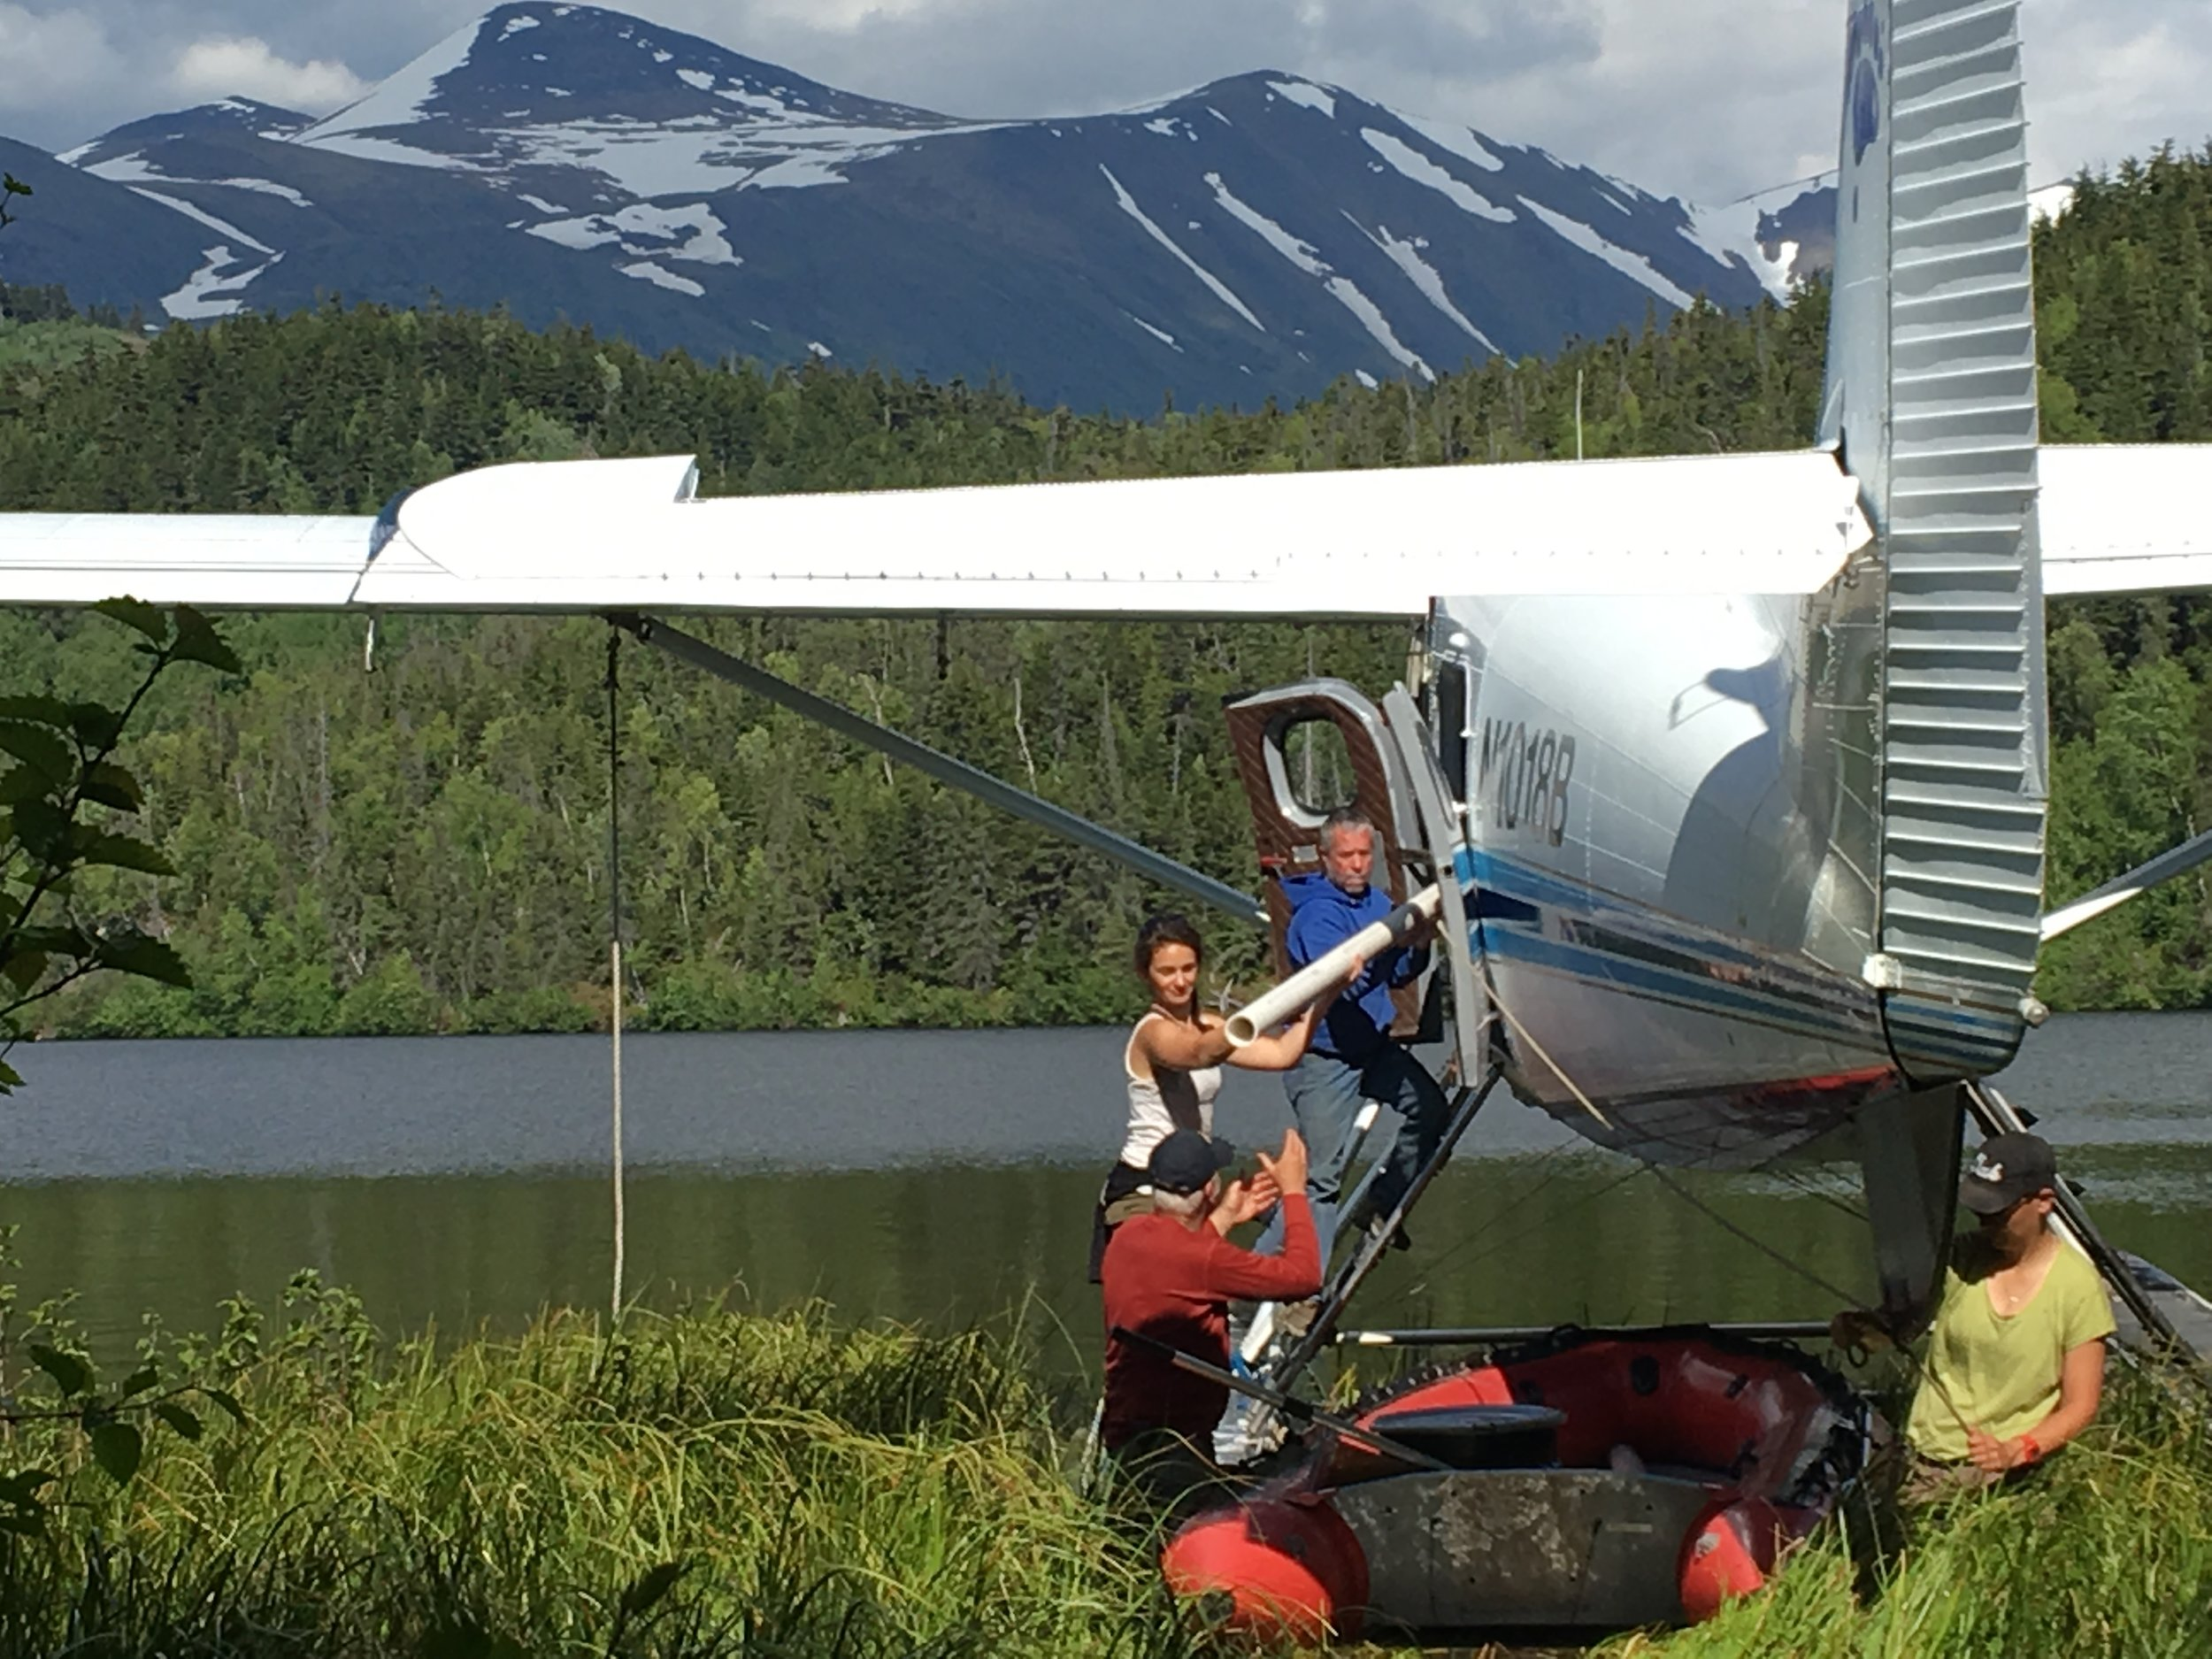 Ellie Broadman, Scott Anderson, and Annie Wong unloading gear from the Otter at Pothole lake